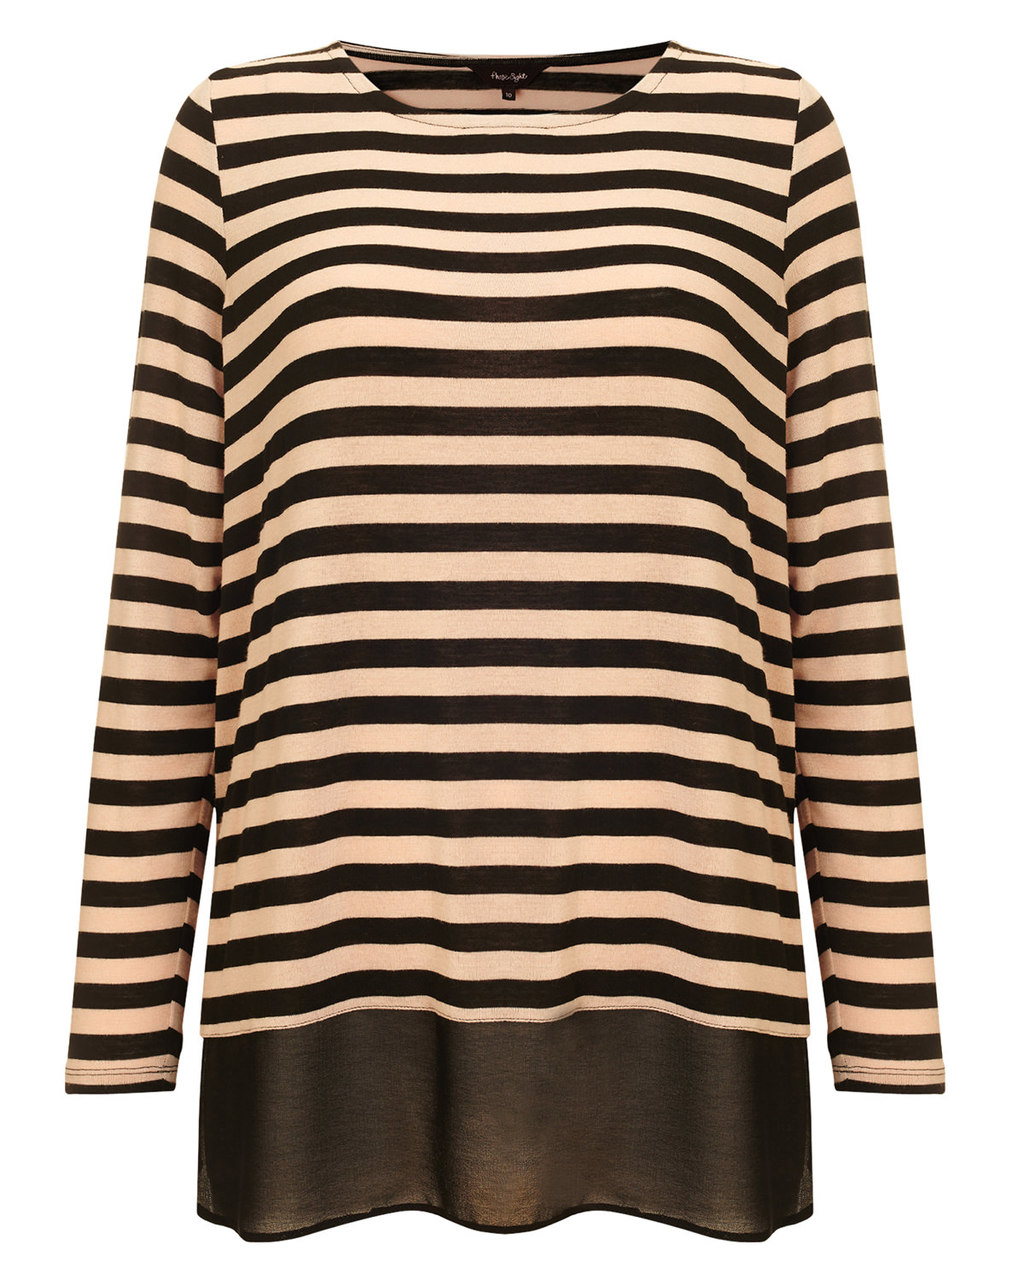 Sandie Stripe Top - neckline: round neck; pattern: horizontal stripes; length: below the bottom; style: t-shirt; secondary colour: chocolate brown; predominant colour: stone; occasions: casual, creative work; fibres: polyester/polyamide - stretch; fit: loose; sleeve length: long sleeve; sleeve style: standard; pattern type: fabric; pattern size: light/subtle; texture group: jersey - stretchy/drapey; season: a/w 2015